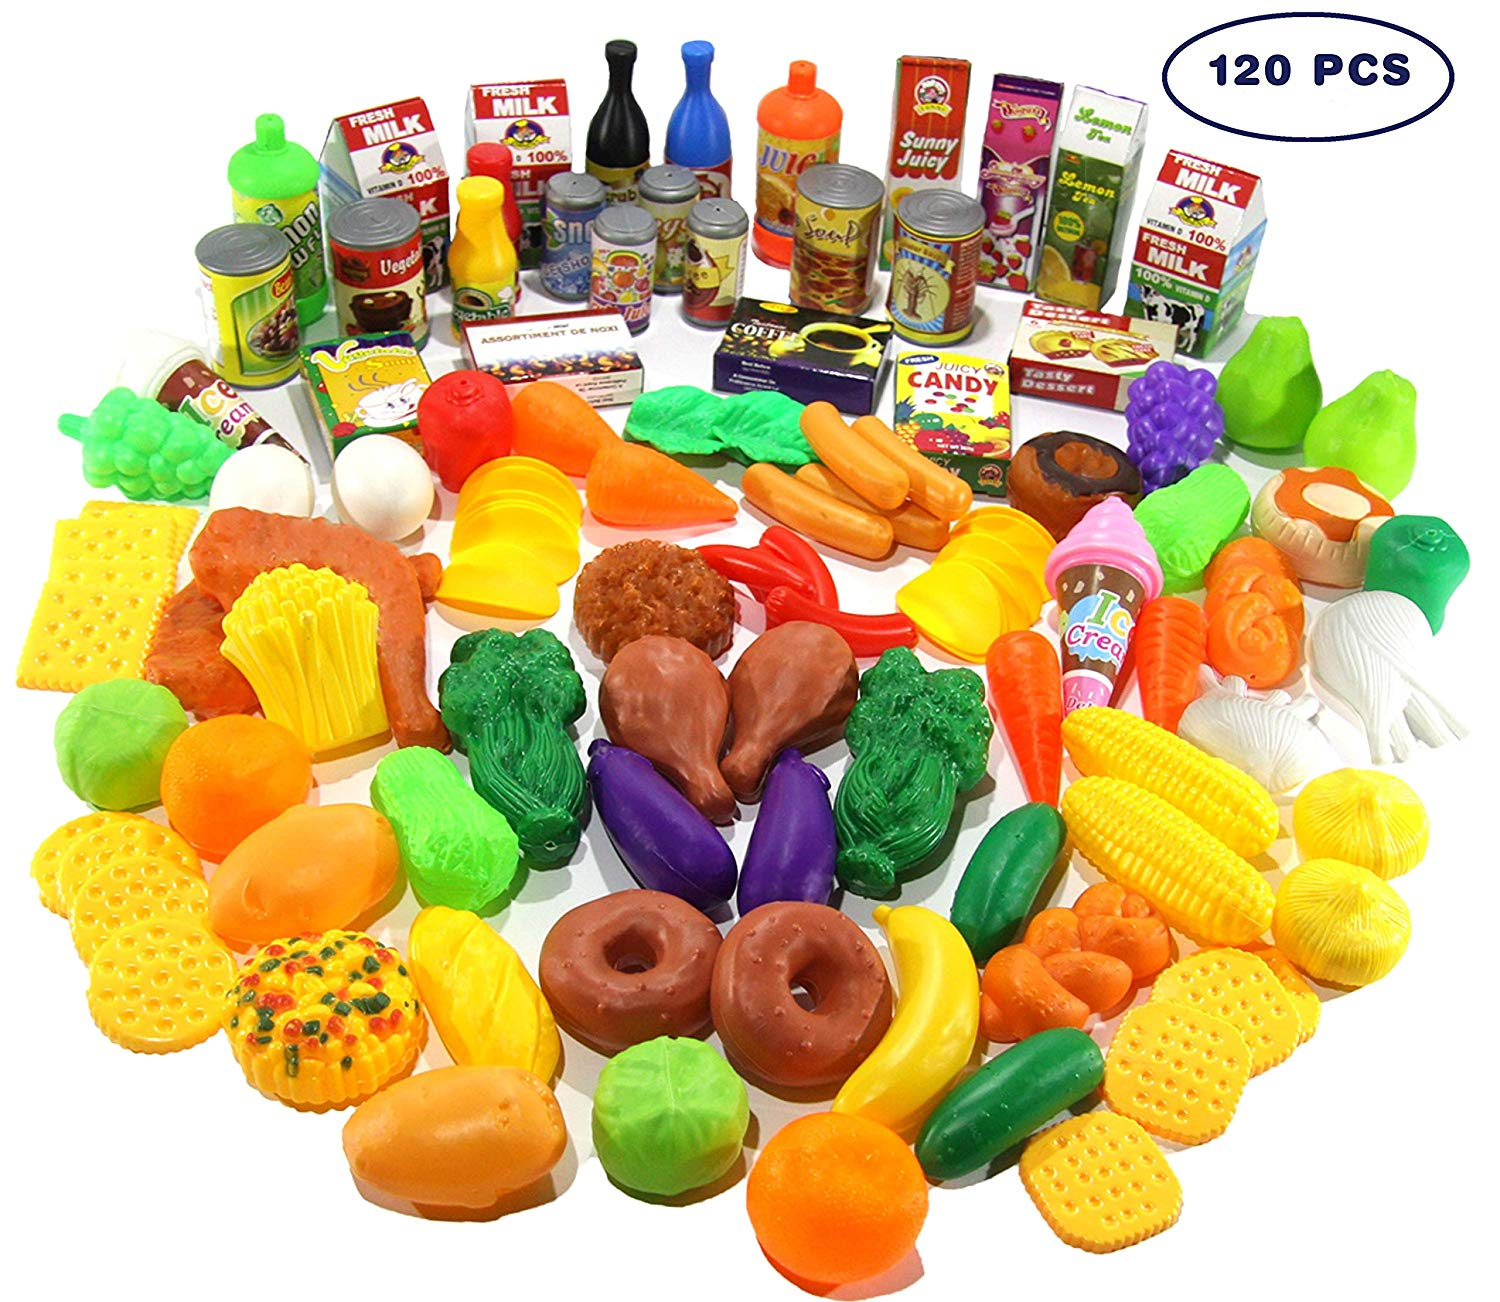 Buy Play Food Set 120 Pcs Deluxe Pretend Food Set Kids